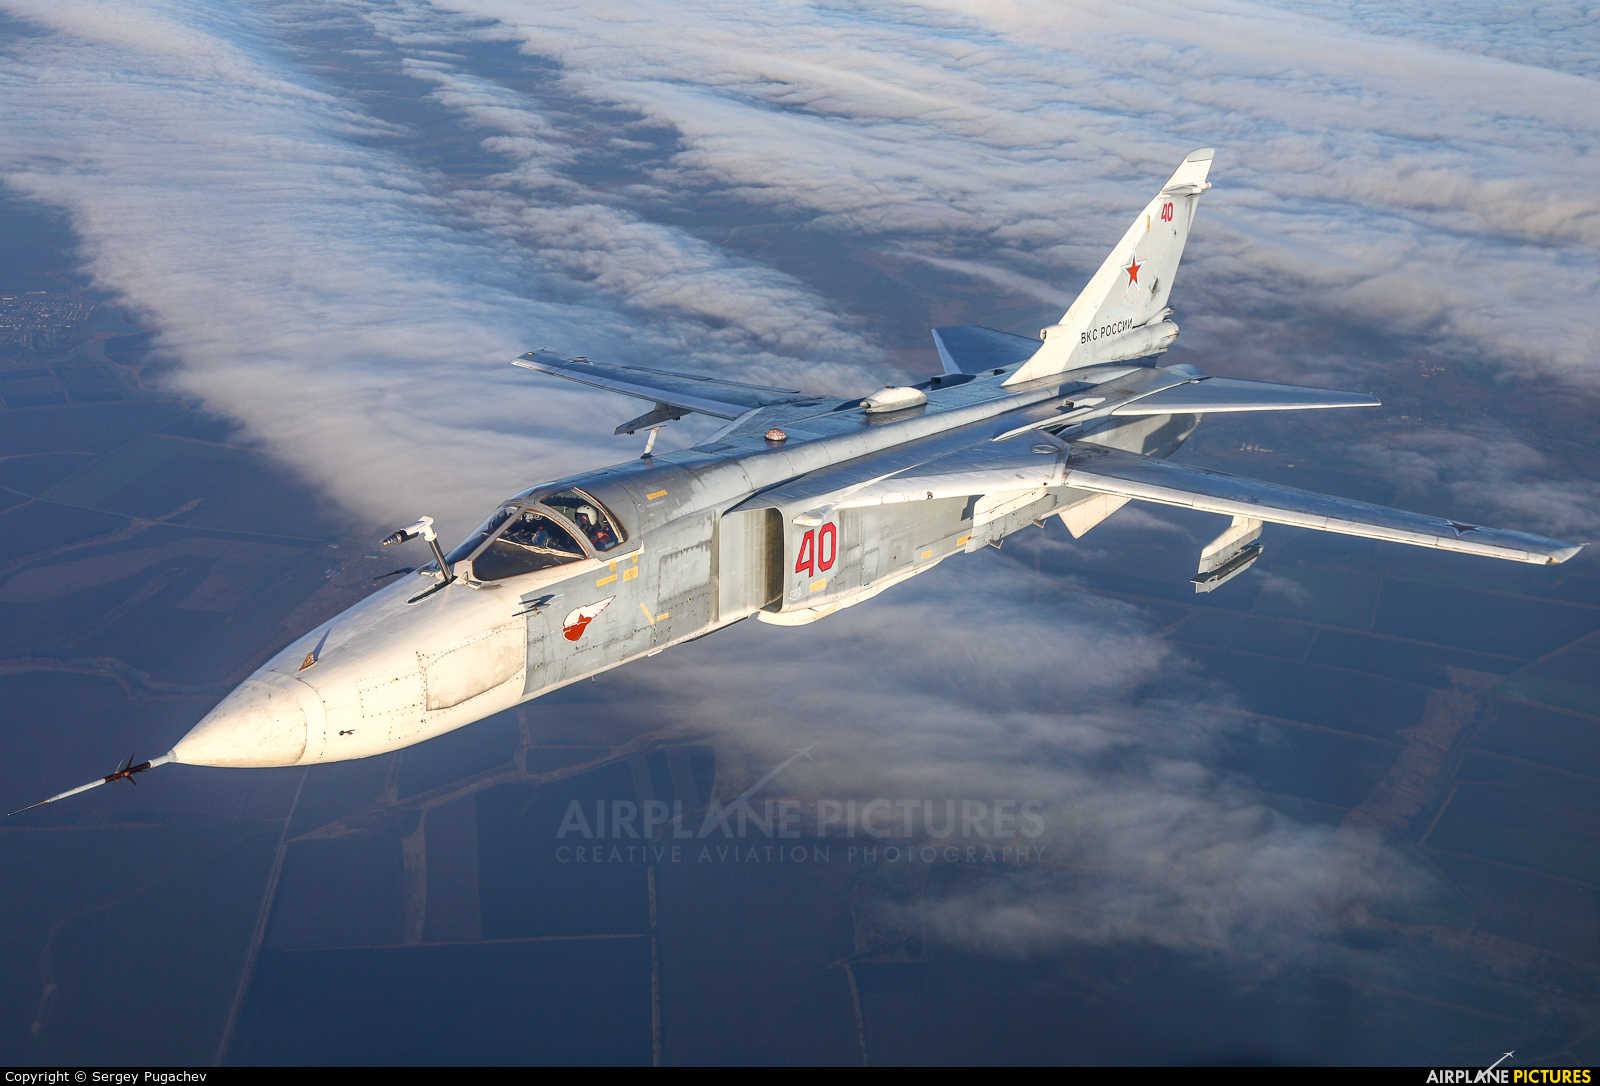 Russia - Air Force 40 aircraft at In Flight - Russia